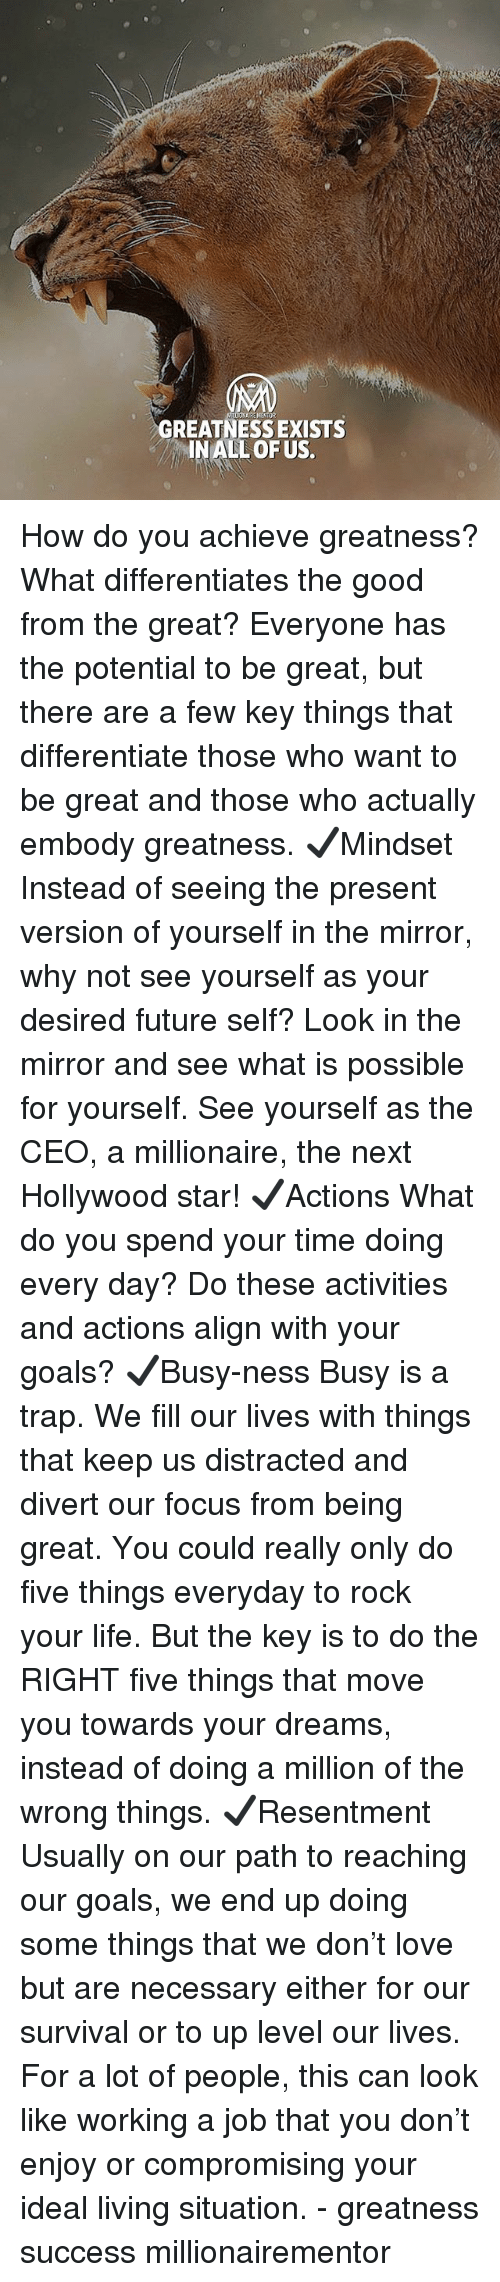 Future, Goals, and Life: GREATNESS EXISTS  INALL OF US. How do you achieve greatness? What differentiates the good from the great? Everyone has the potential to be great, but there are a few key things that differentiate those who want to be great and those who actually embody greatness. ✔️Mindset Instead of seeing the present version of yourself in the mirror, why not see yourself as your desired future self? Look in the mirror and see what is possible for yourself. See yourself as the CEO, a millionaire, the next Hollywood star! ✔️Actions What do you spend your time doing every day? Do these activities and actions align with your goals? ✔️Busy-ness Busy is a trap. We fill our lives with things that keep us distracted and divert our focus from being great. You could really only do five things everyday to rock your life. But the key is to do the RIGHT five things that move you towards your dreams, instead of doing a million of the wrong things. ✔️Resentment Usually on our path to reaching our goals, we end up doing some things that we don't love but are necessary either for our survival or to up level our lives. For a lot of people, this can look like working a job that you don't enjoy or compromising your ideal living situation. - greatness success millionairementor